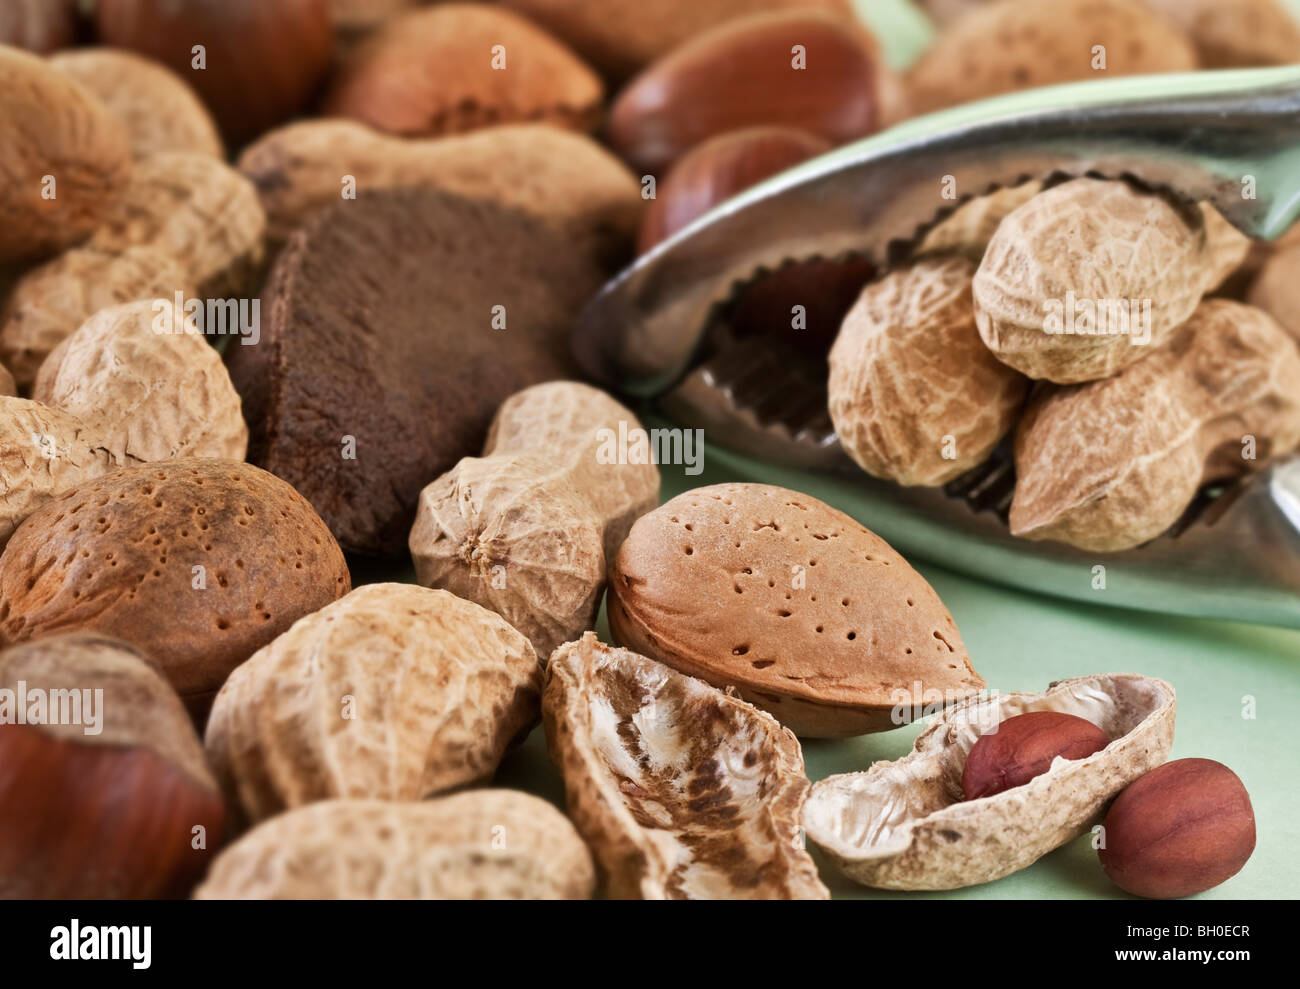 Mixed Nuts and Nutcracker filled with Peanuts - Stock Image